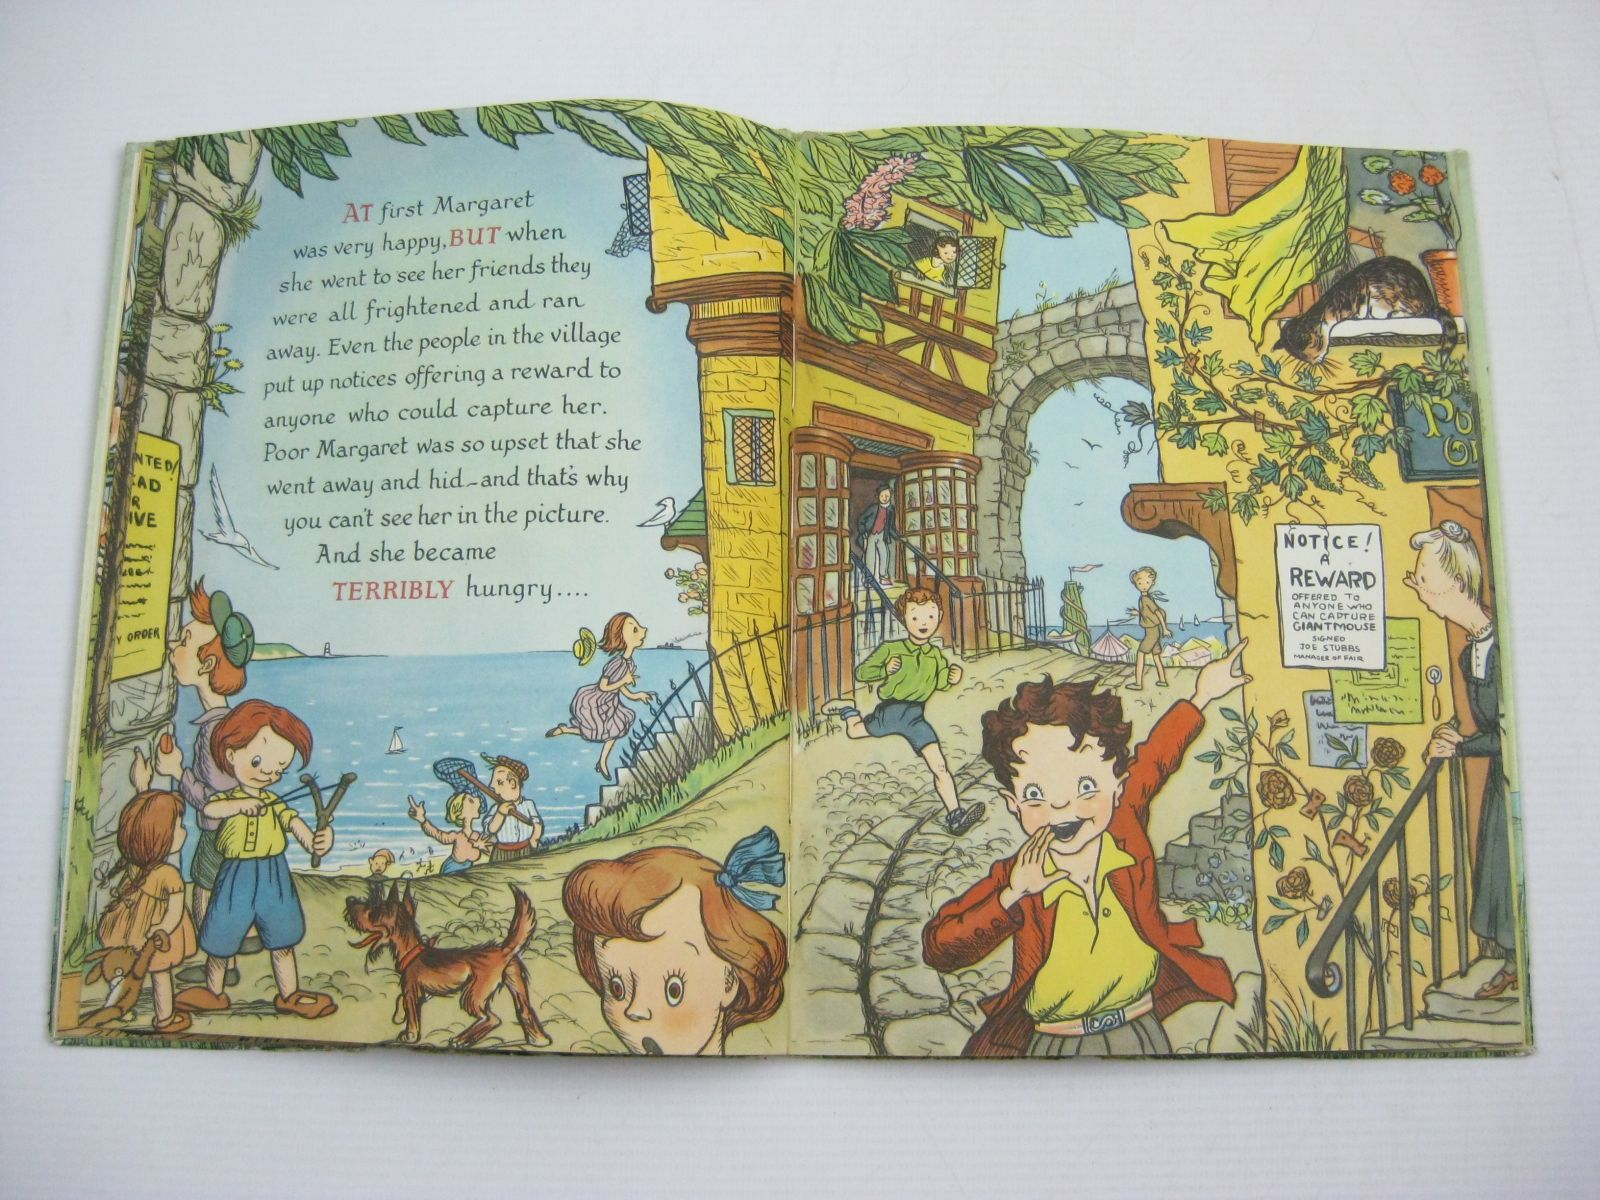 Photo of THE STORY OF MARGARET FIELD-MOUSE written by Cam,  illustrated by Cam,  published by John Lane The Bodley Head (STOCK CODE: 1504974)  for sale by Stella & Rose's Books